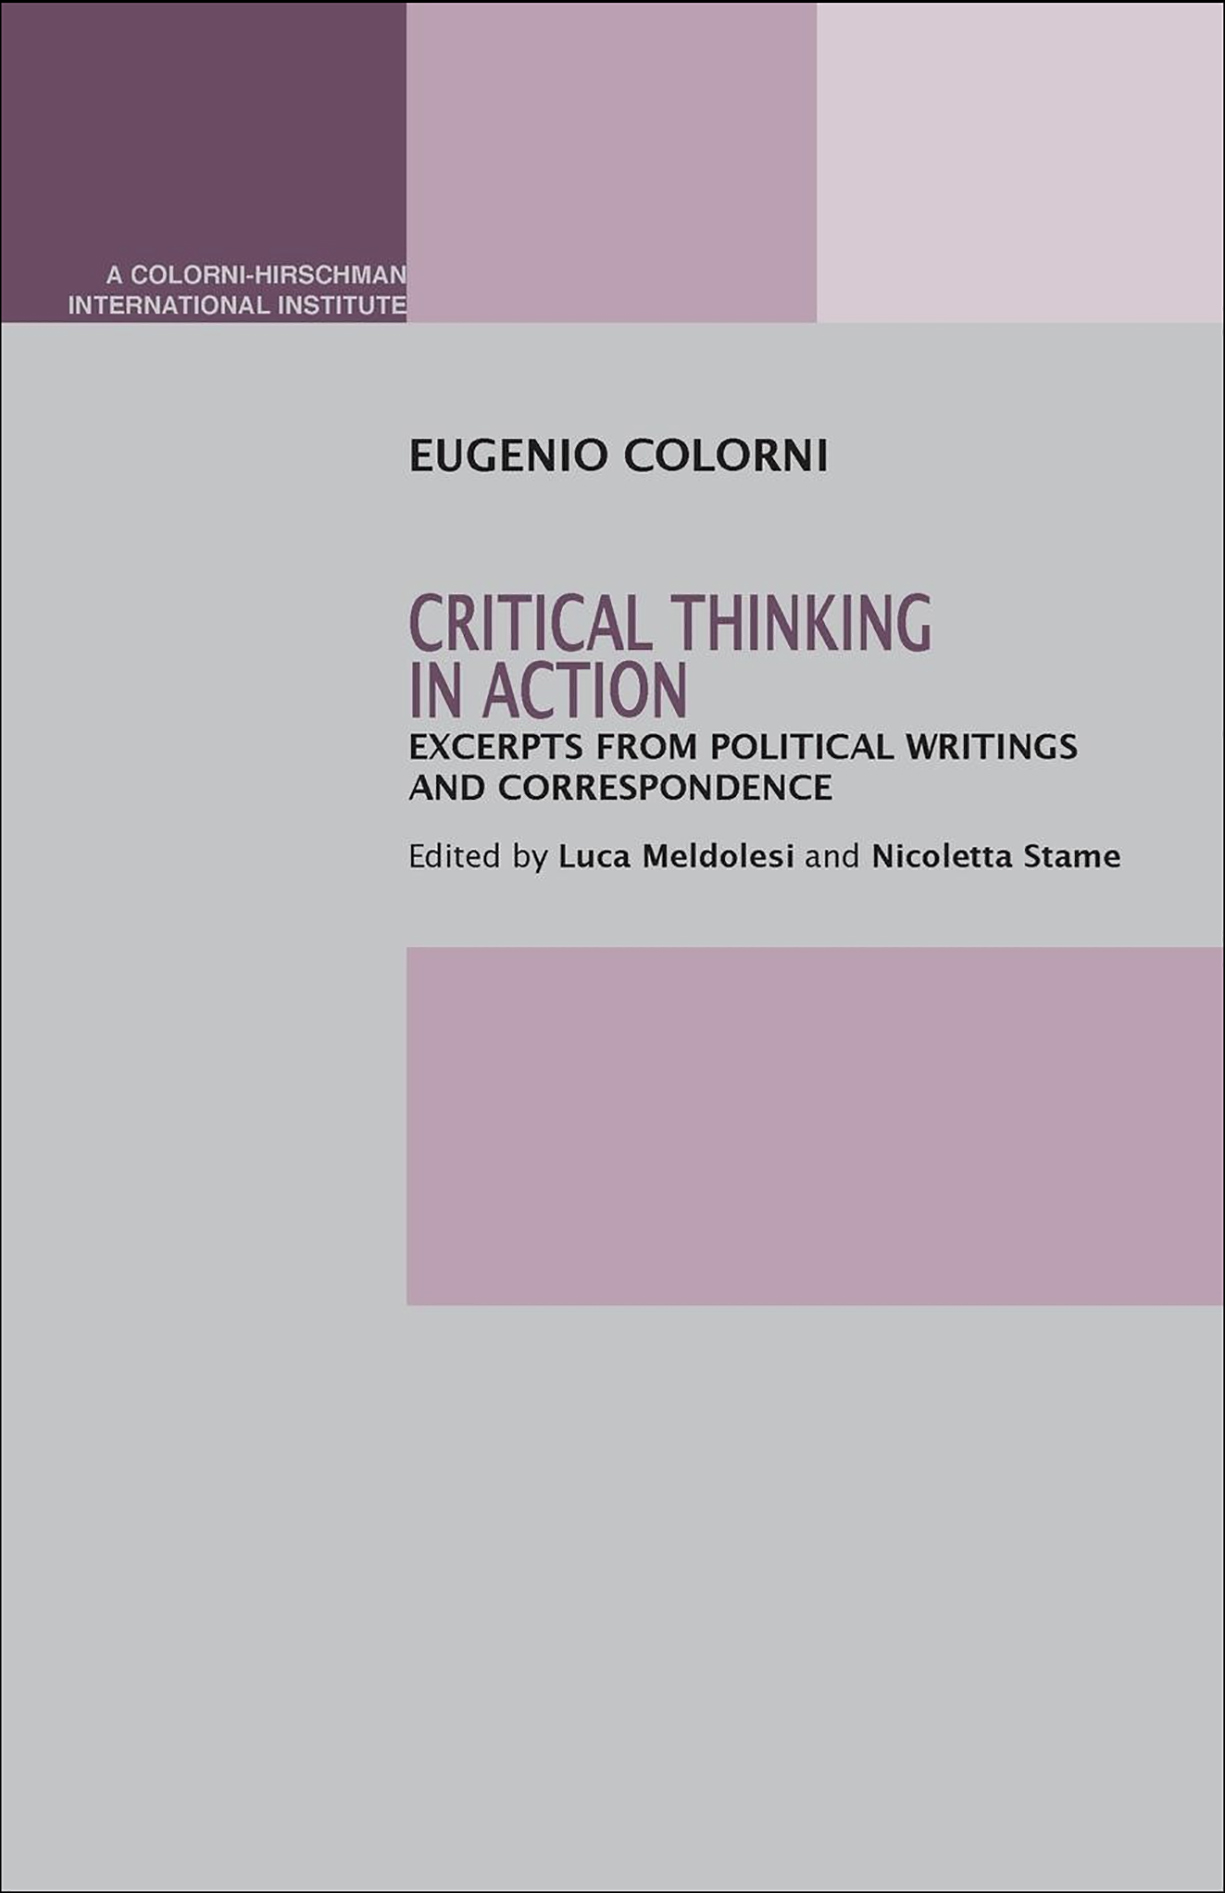 Critical Thinking in Action: Excerpts from Political Writings and Correspondence